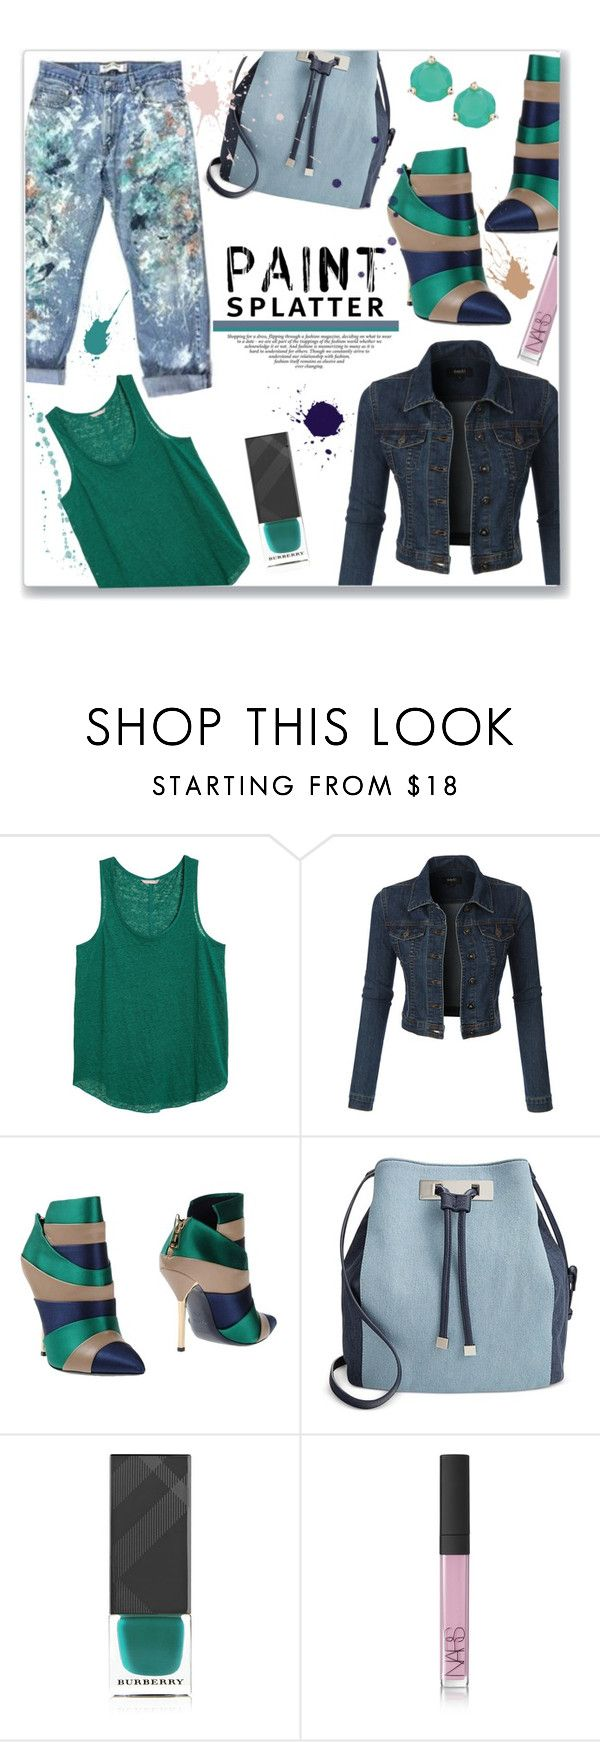 """""""One Piece at a Time"""" by jckallan ❤ liked on Polyvore featuring H&M, LE3NO, Vionnet, INC International Concepts, Burberry, NARS Cosmetics, Kate Spade and paintsplatter"""